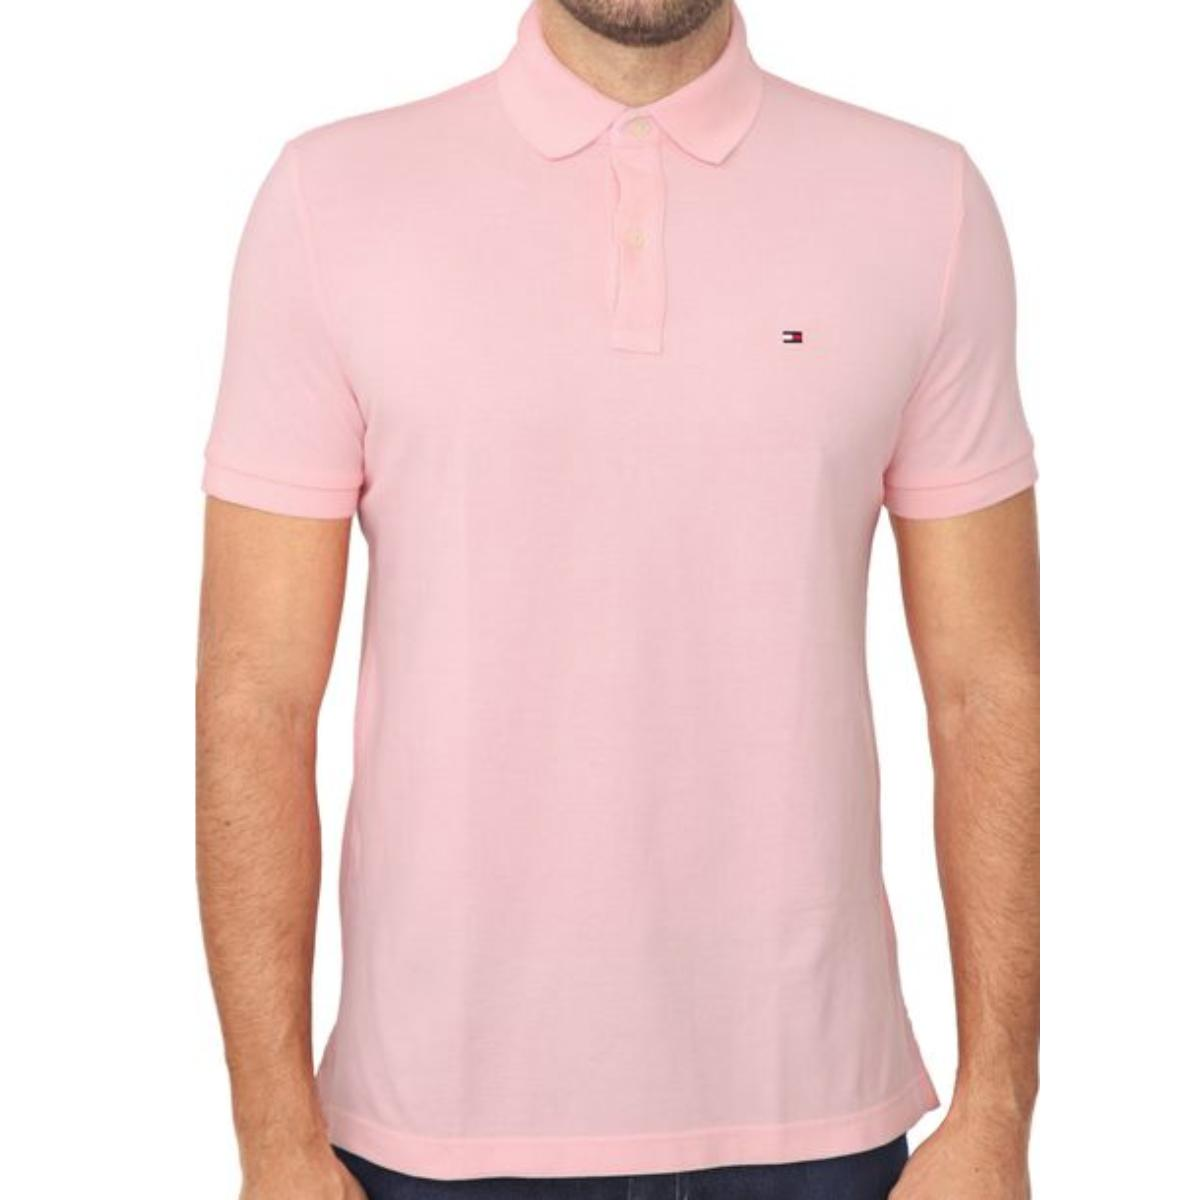 Camisa Masculina Tommy Th7803120 684 Rosa